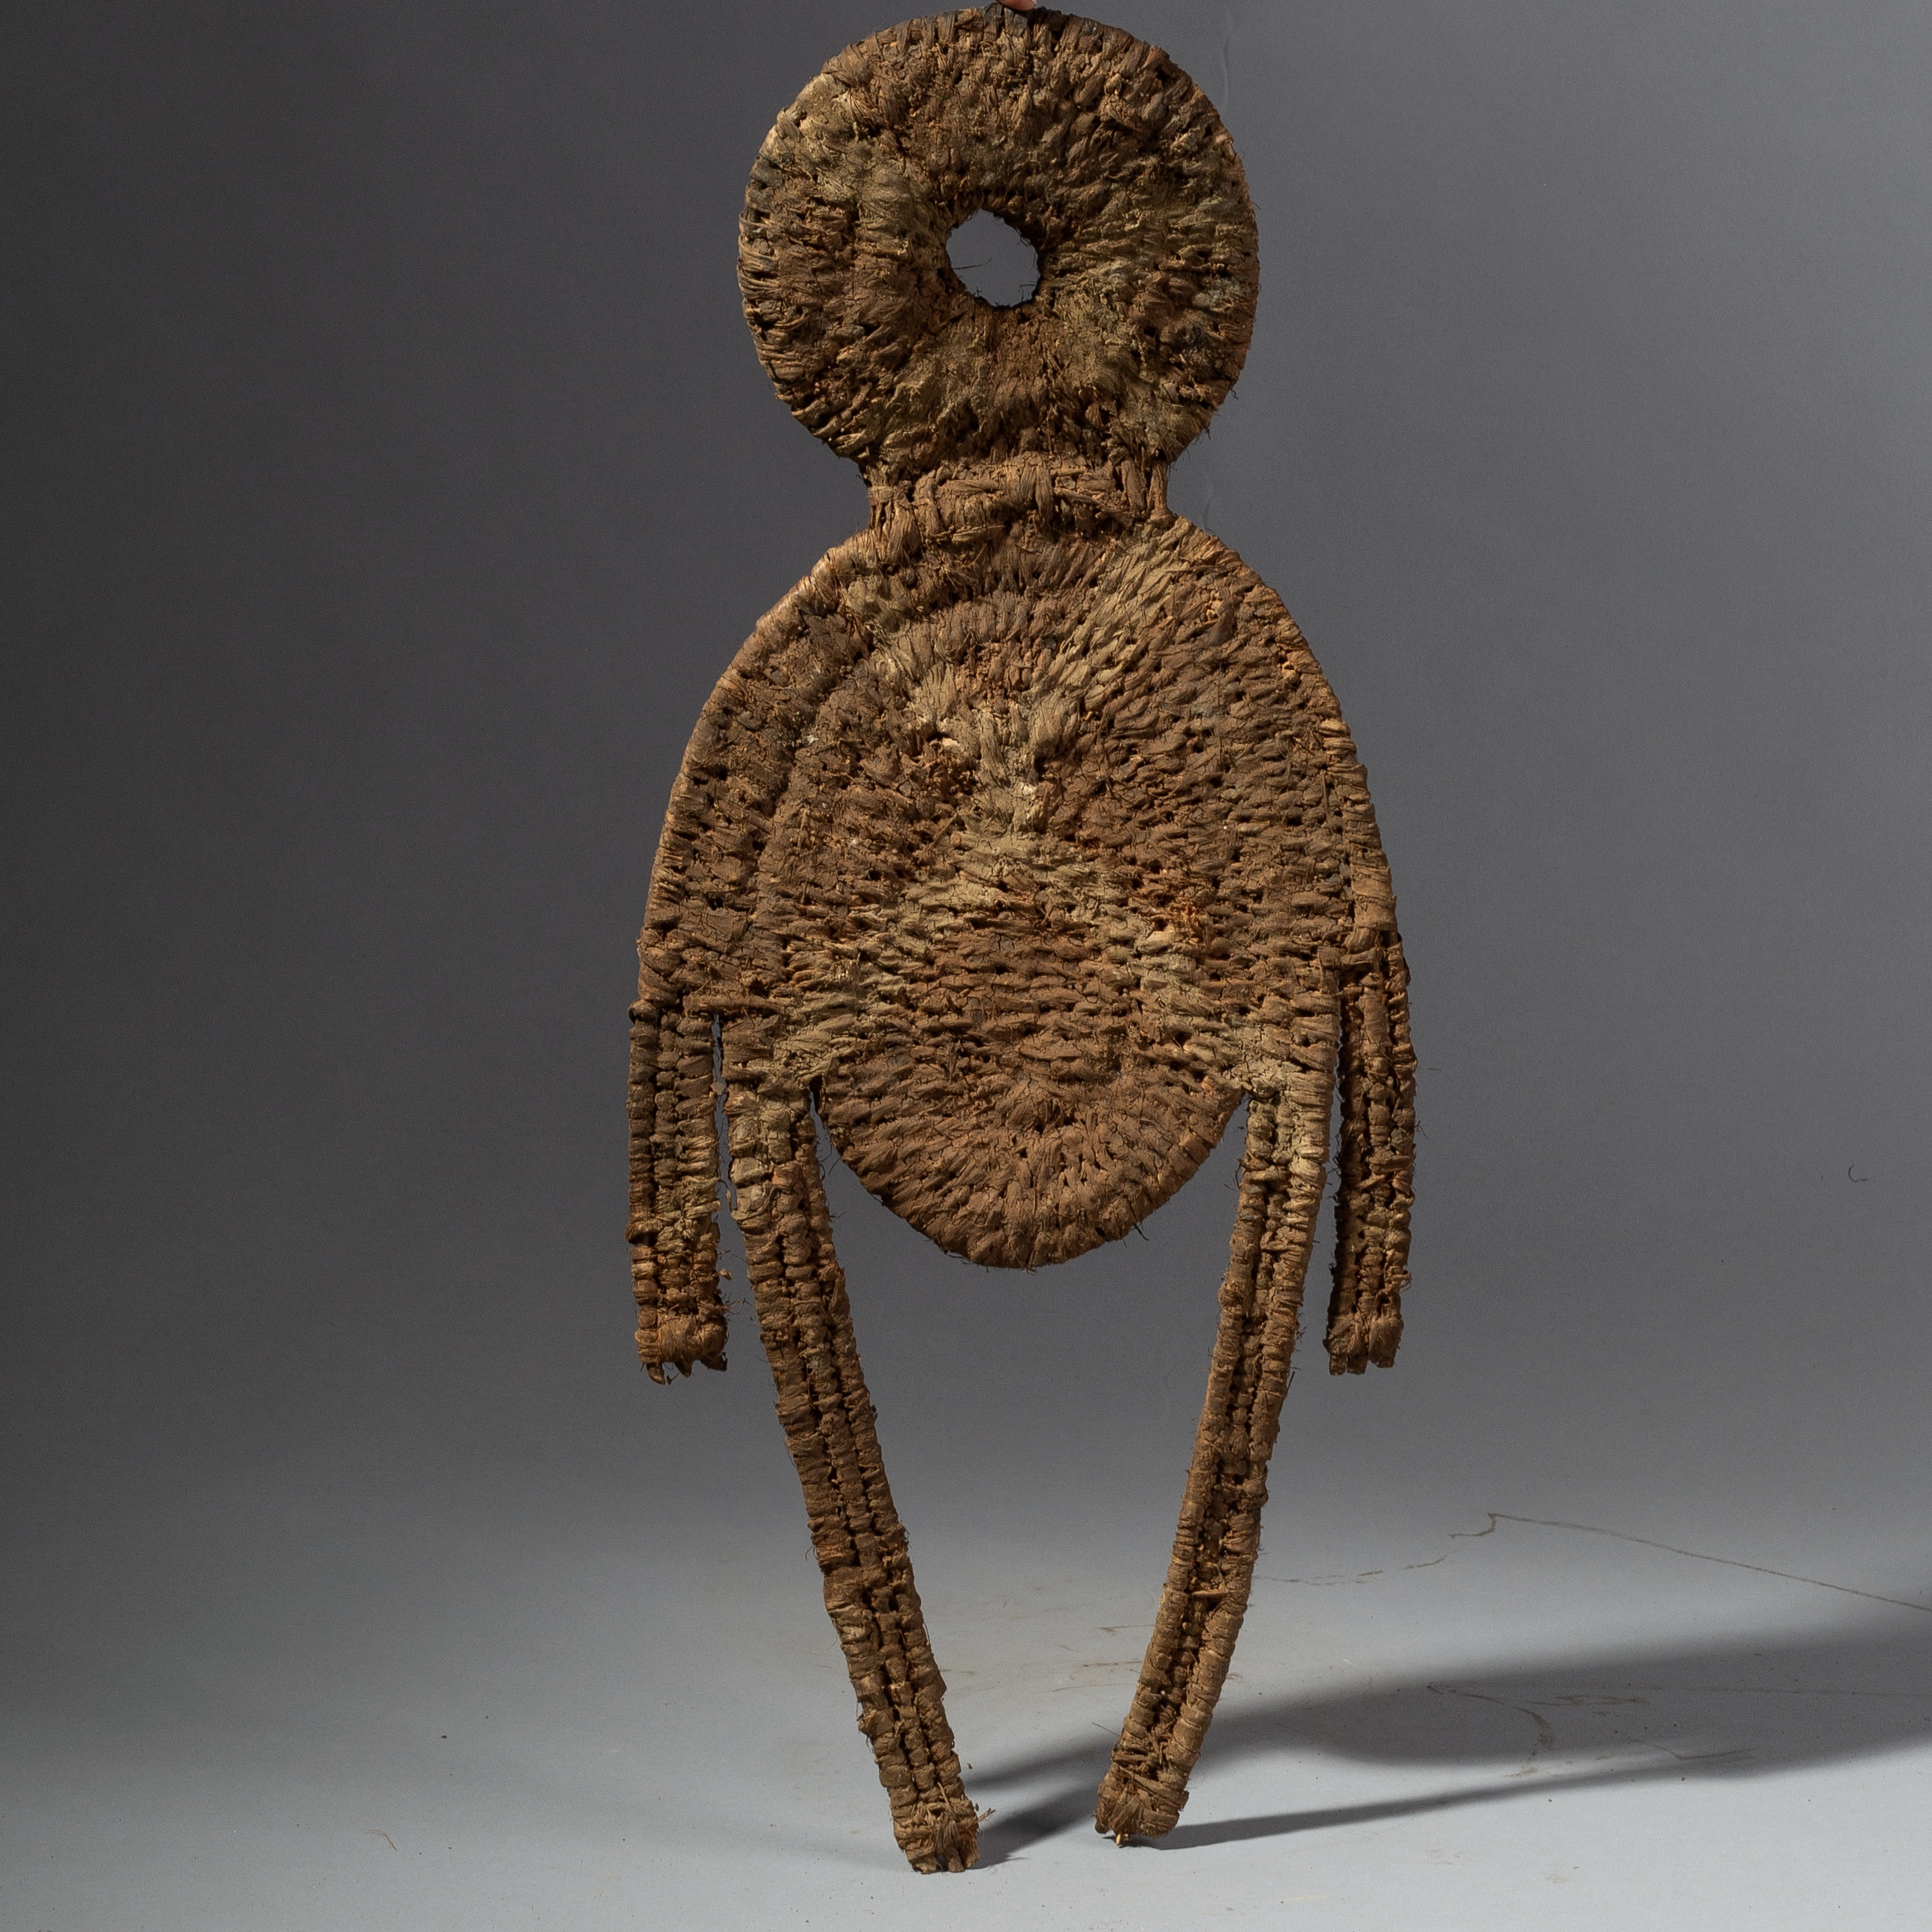 SD A GRAPHIC WOVEN SPIRIT FIGURE FROM PAPUA NEW GUINEA ( No 1862 )